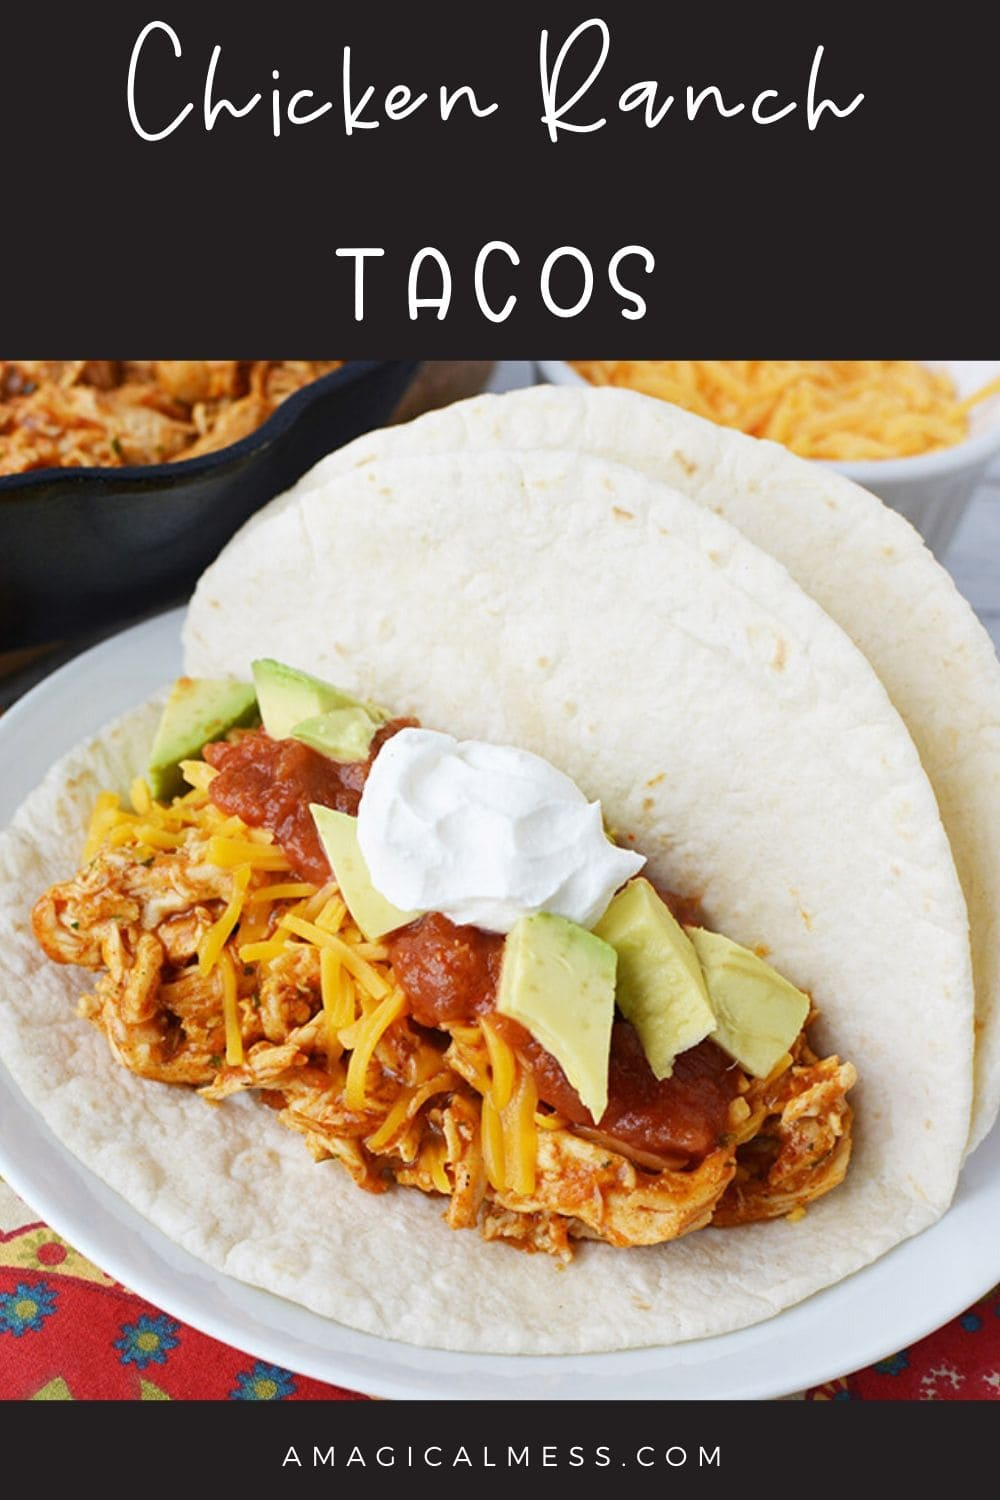 Shredded chicken taco with toppings on a plate